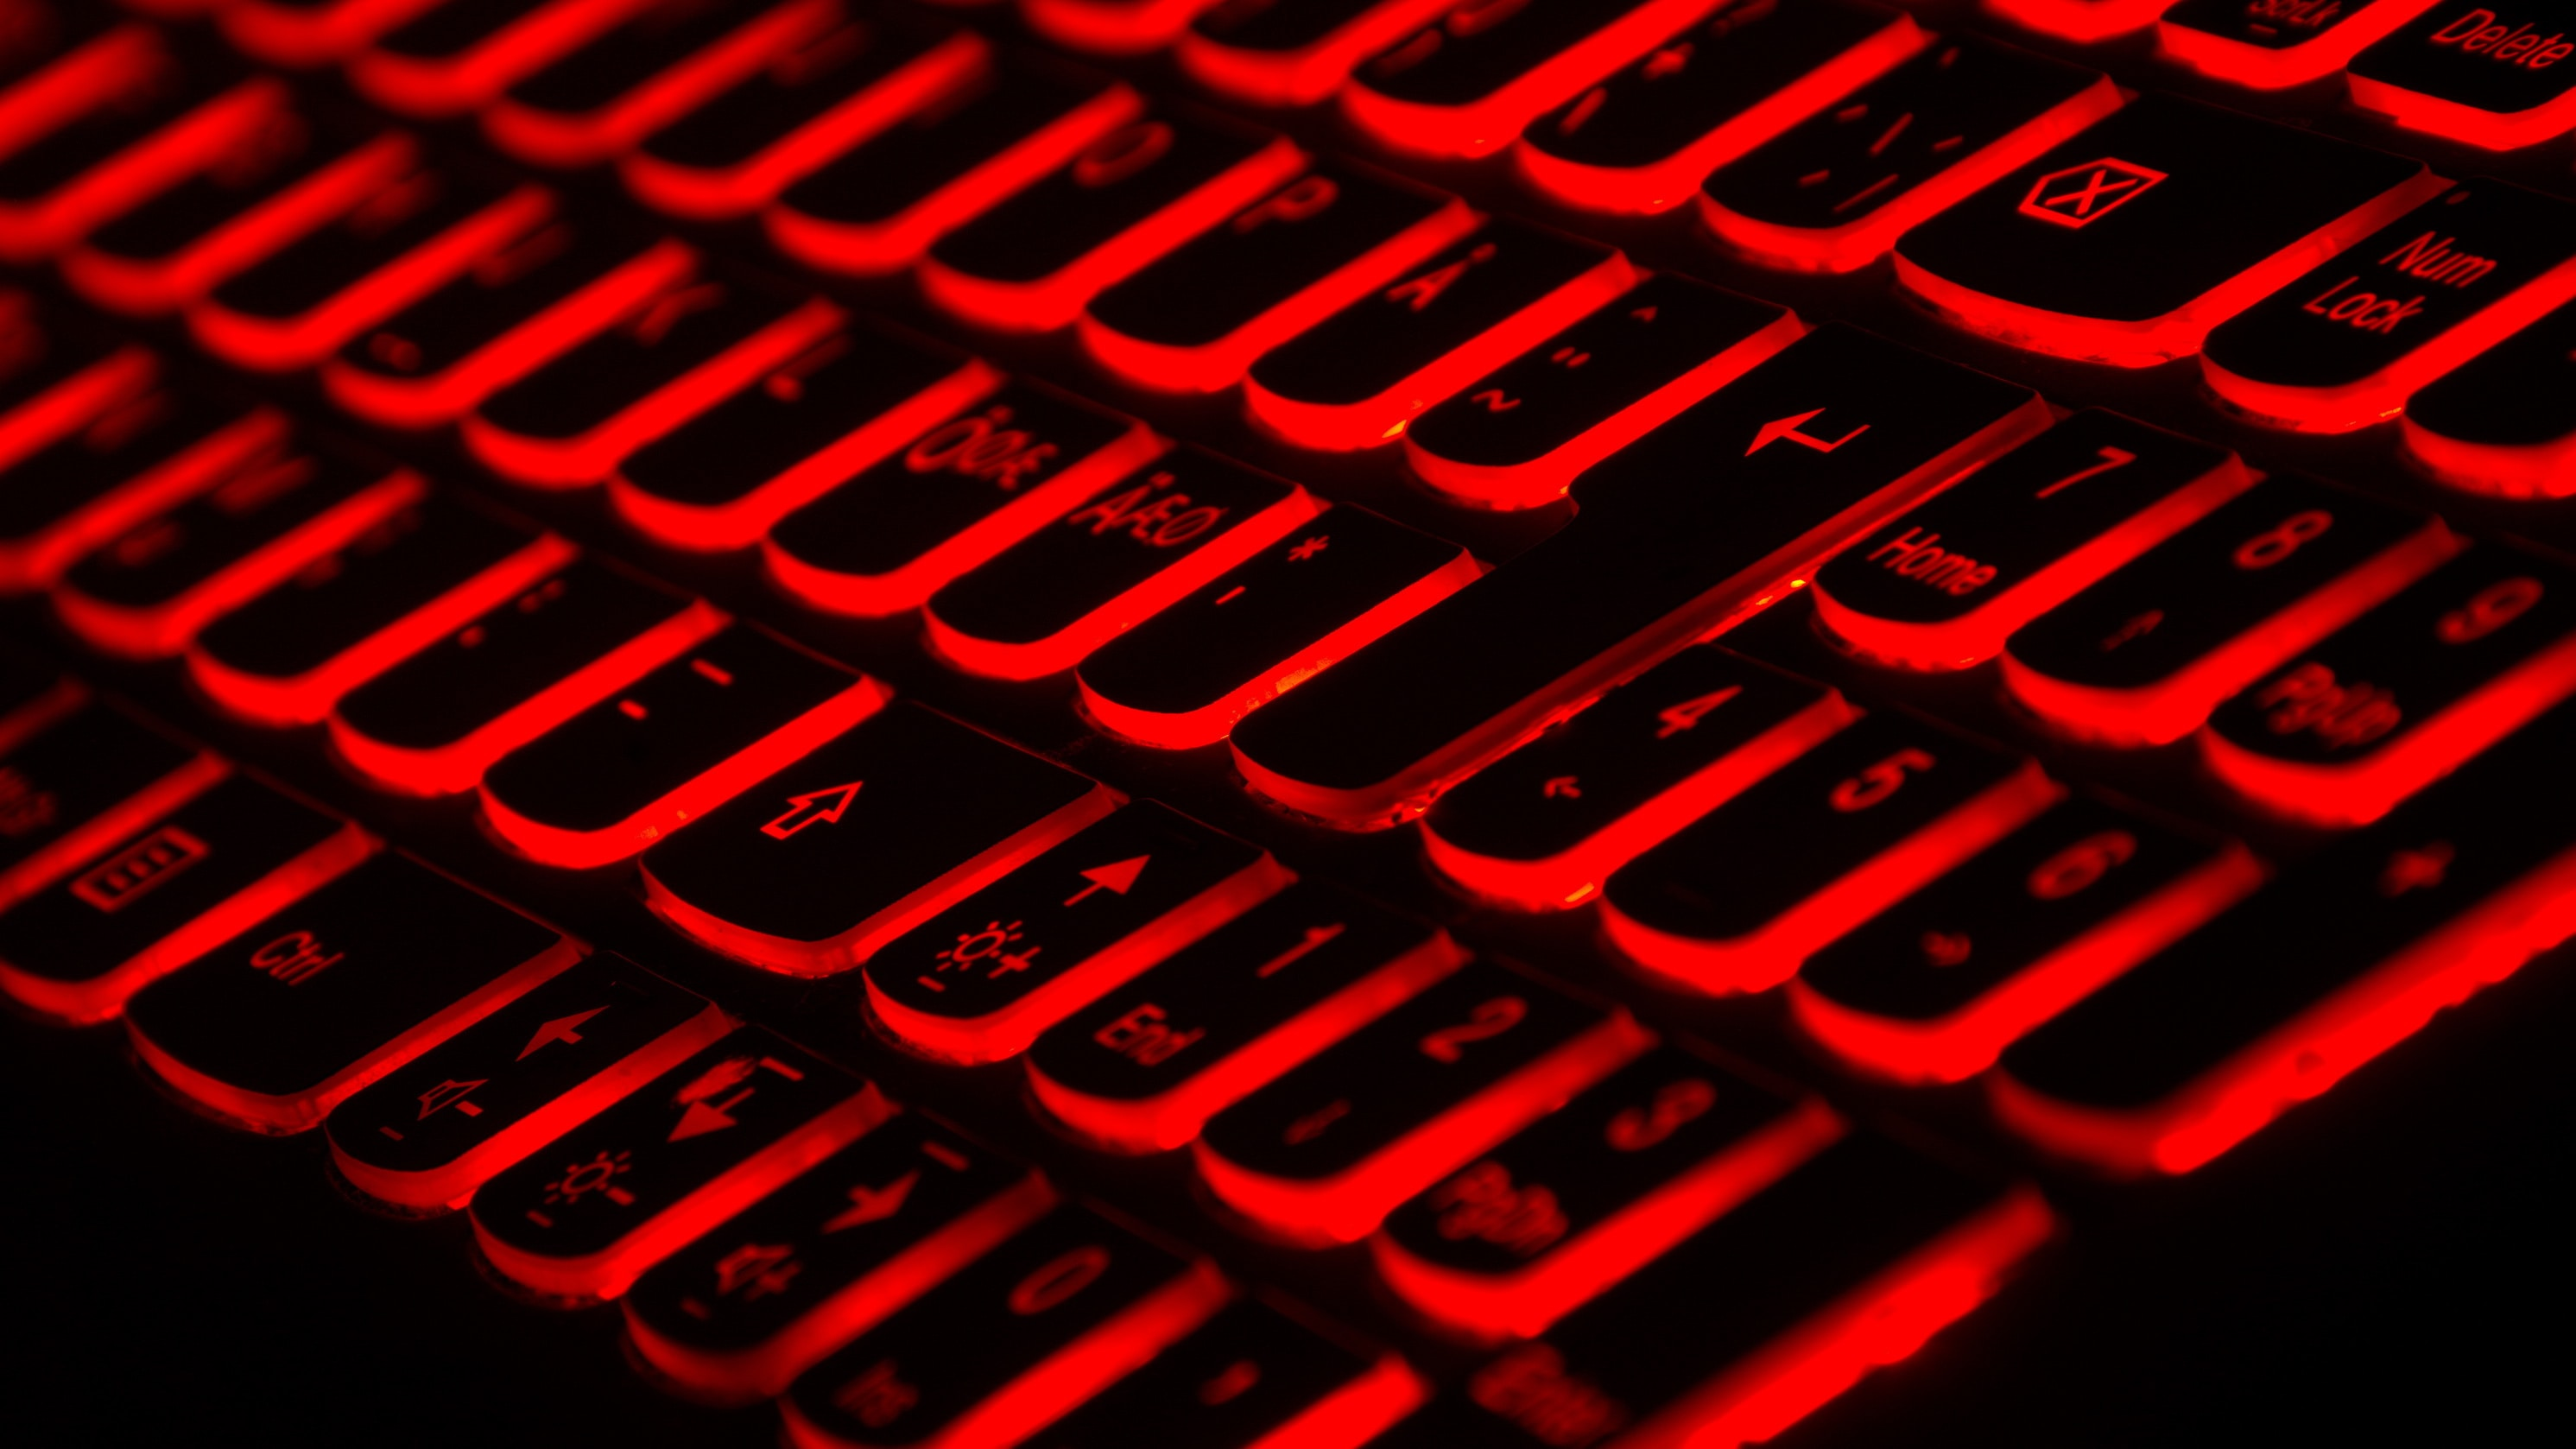 Red keyboard, Photo by Taskin Ashiq on Unsplash